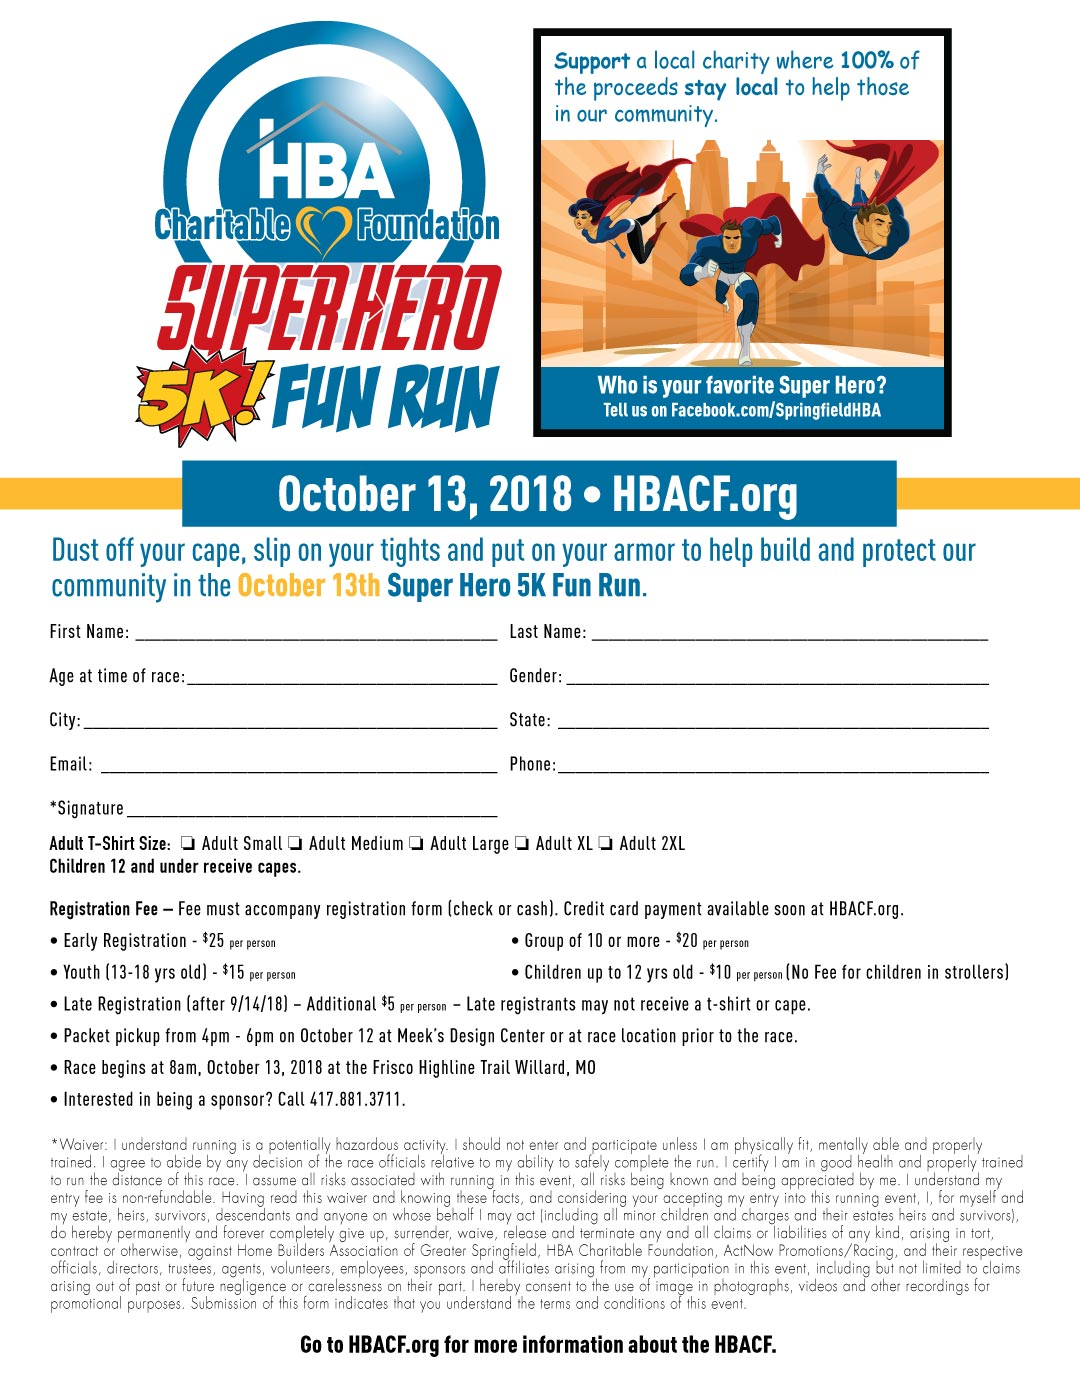 HBACF 5K Super Hero Fun Run